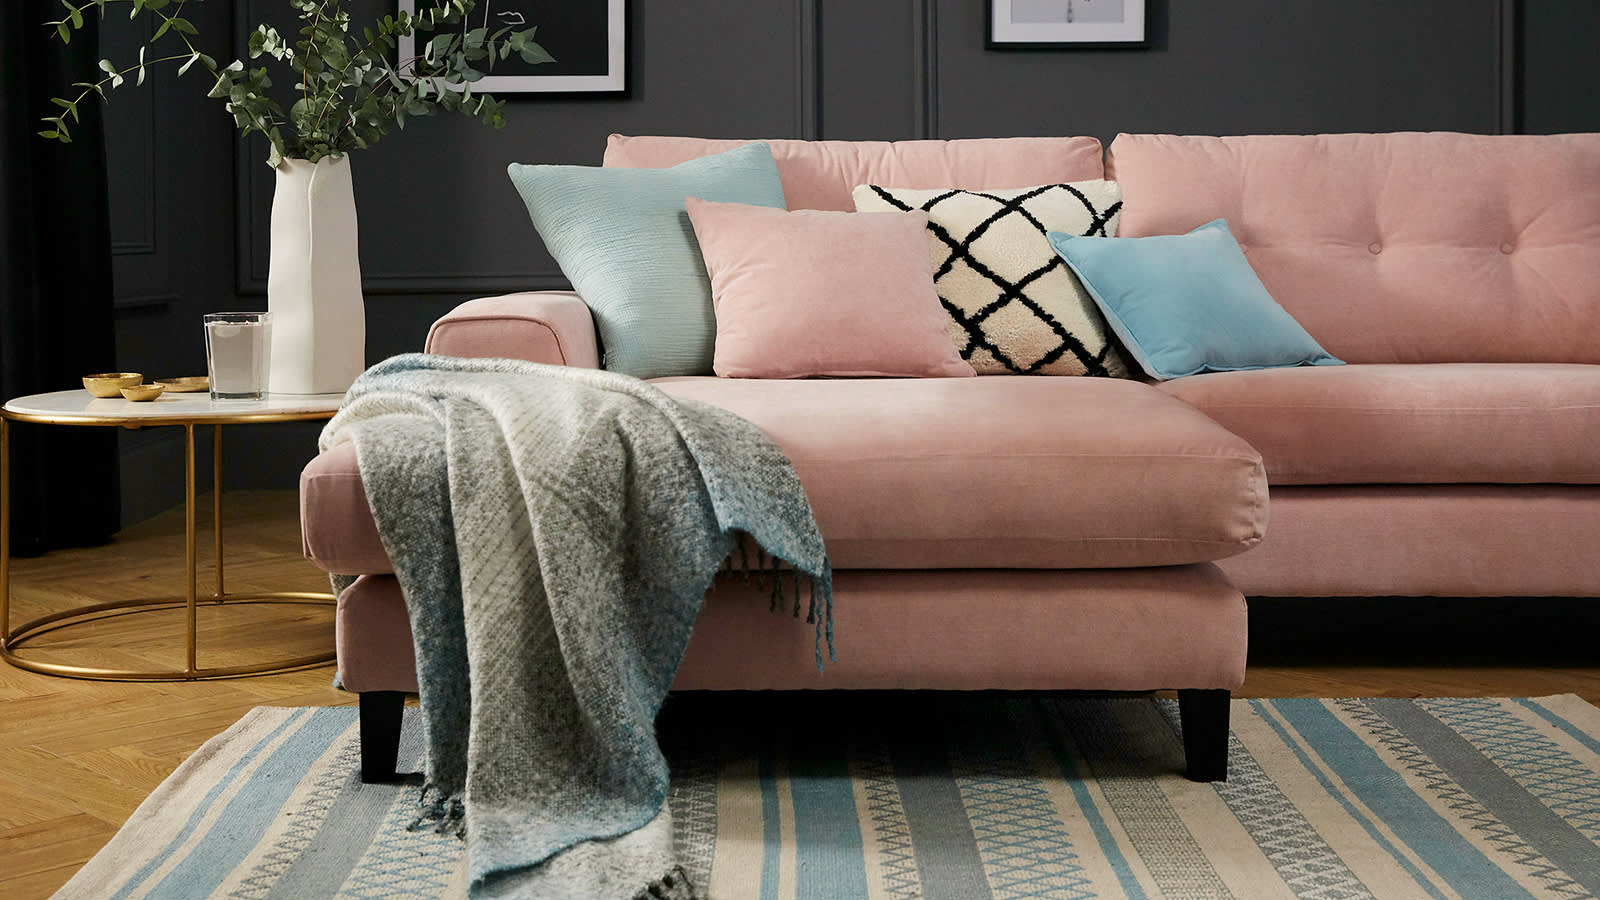 sofology sofas corner sofa beds chairs always low desk demure what color end tables with dark brown leather furniture light pink chaise blue throw and scatter cushions stanley